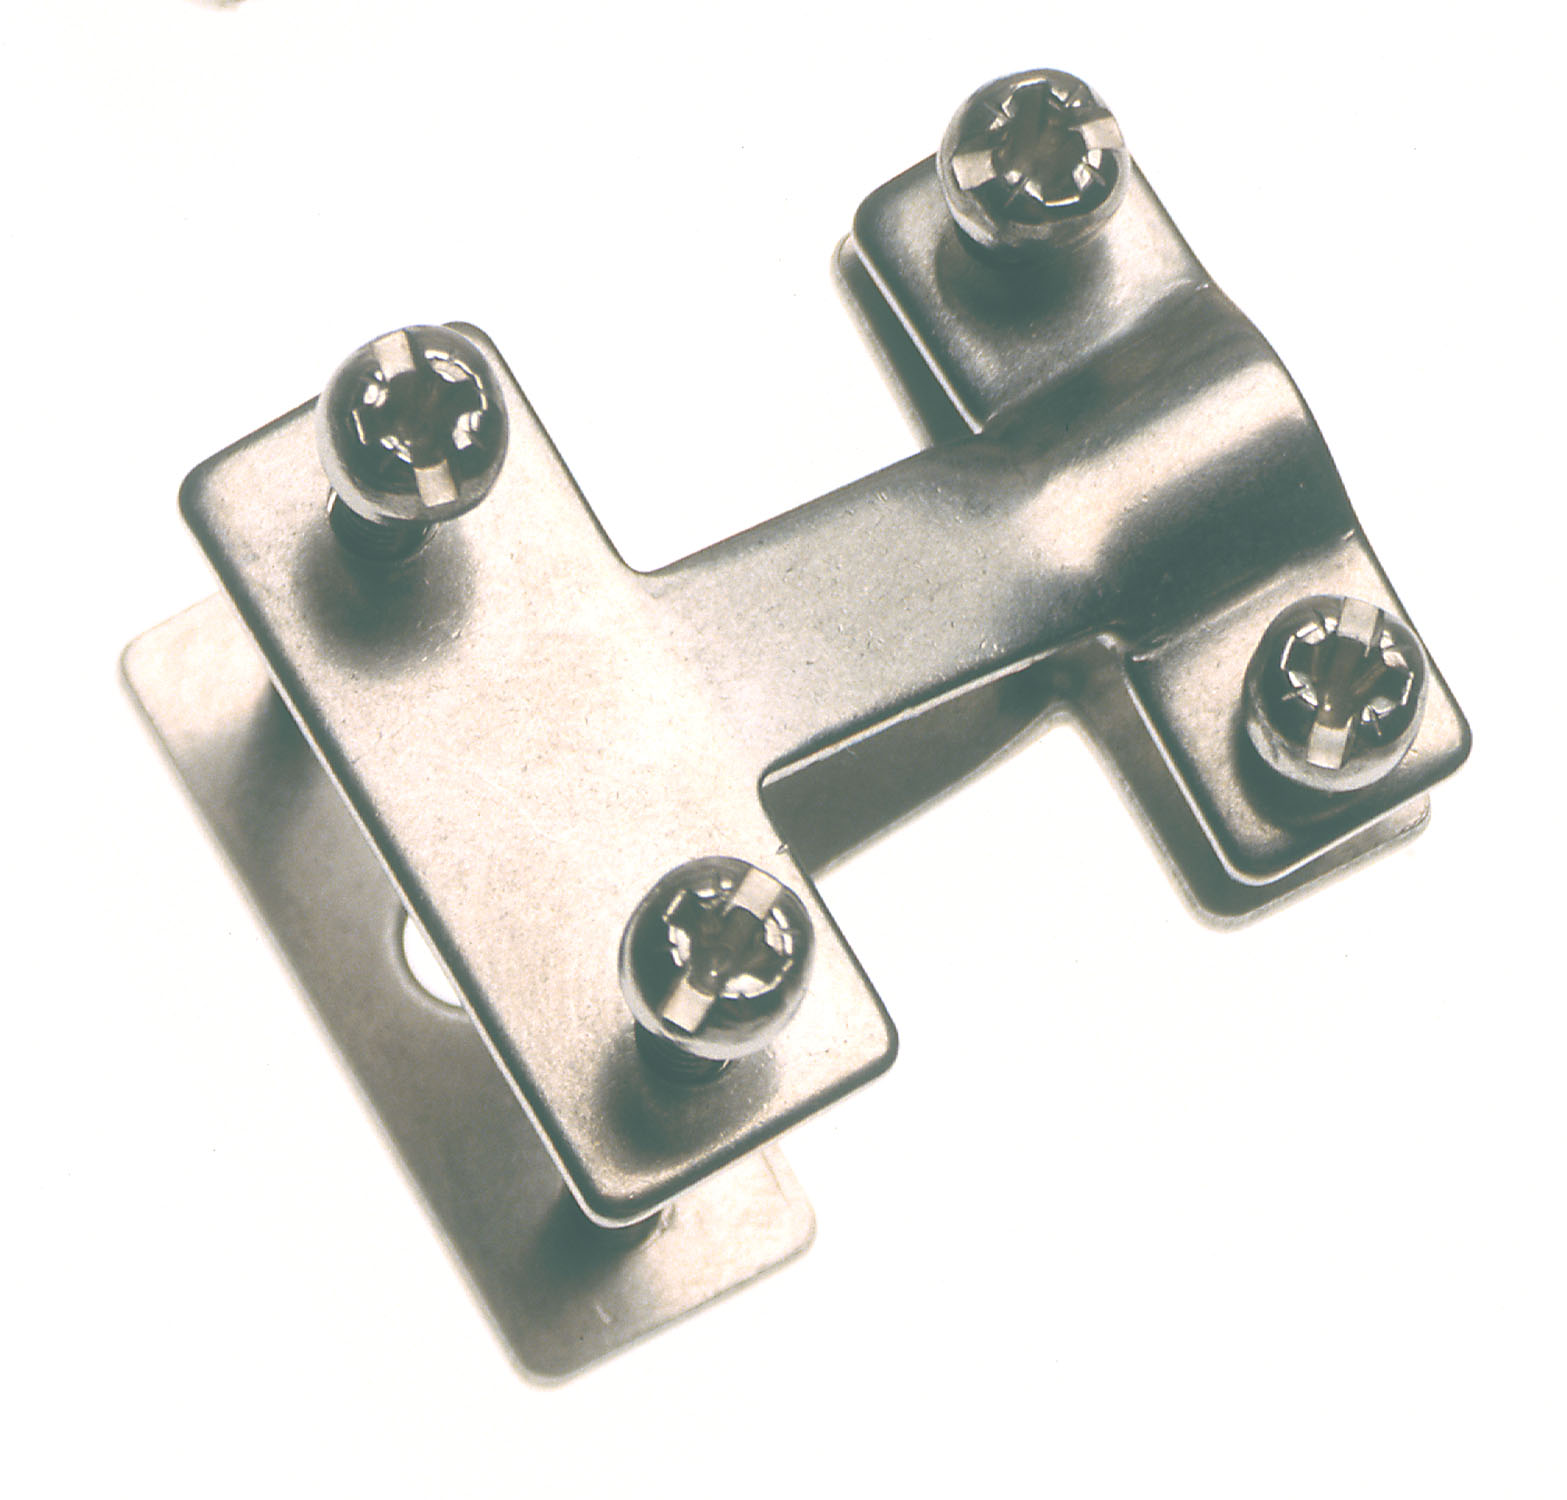 hight resolution of thermocouple connector accessories